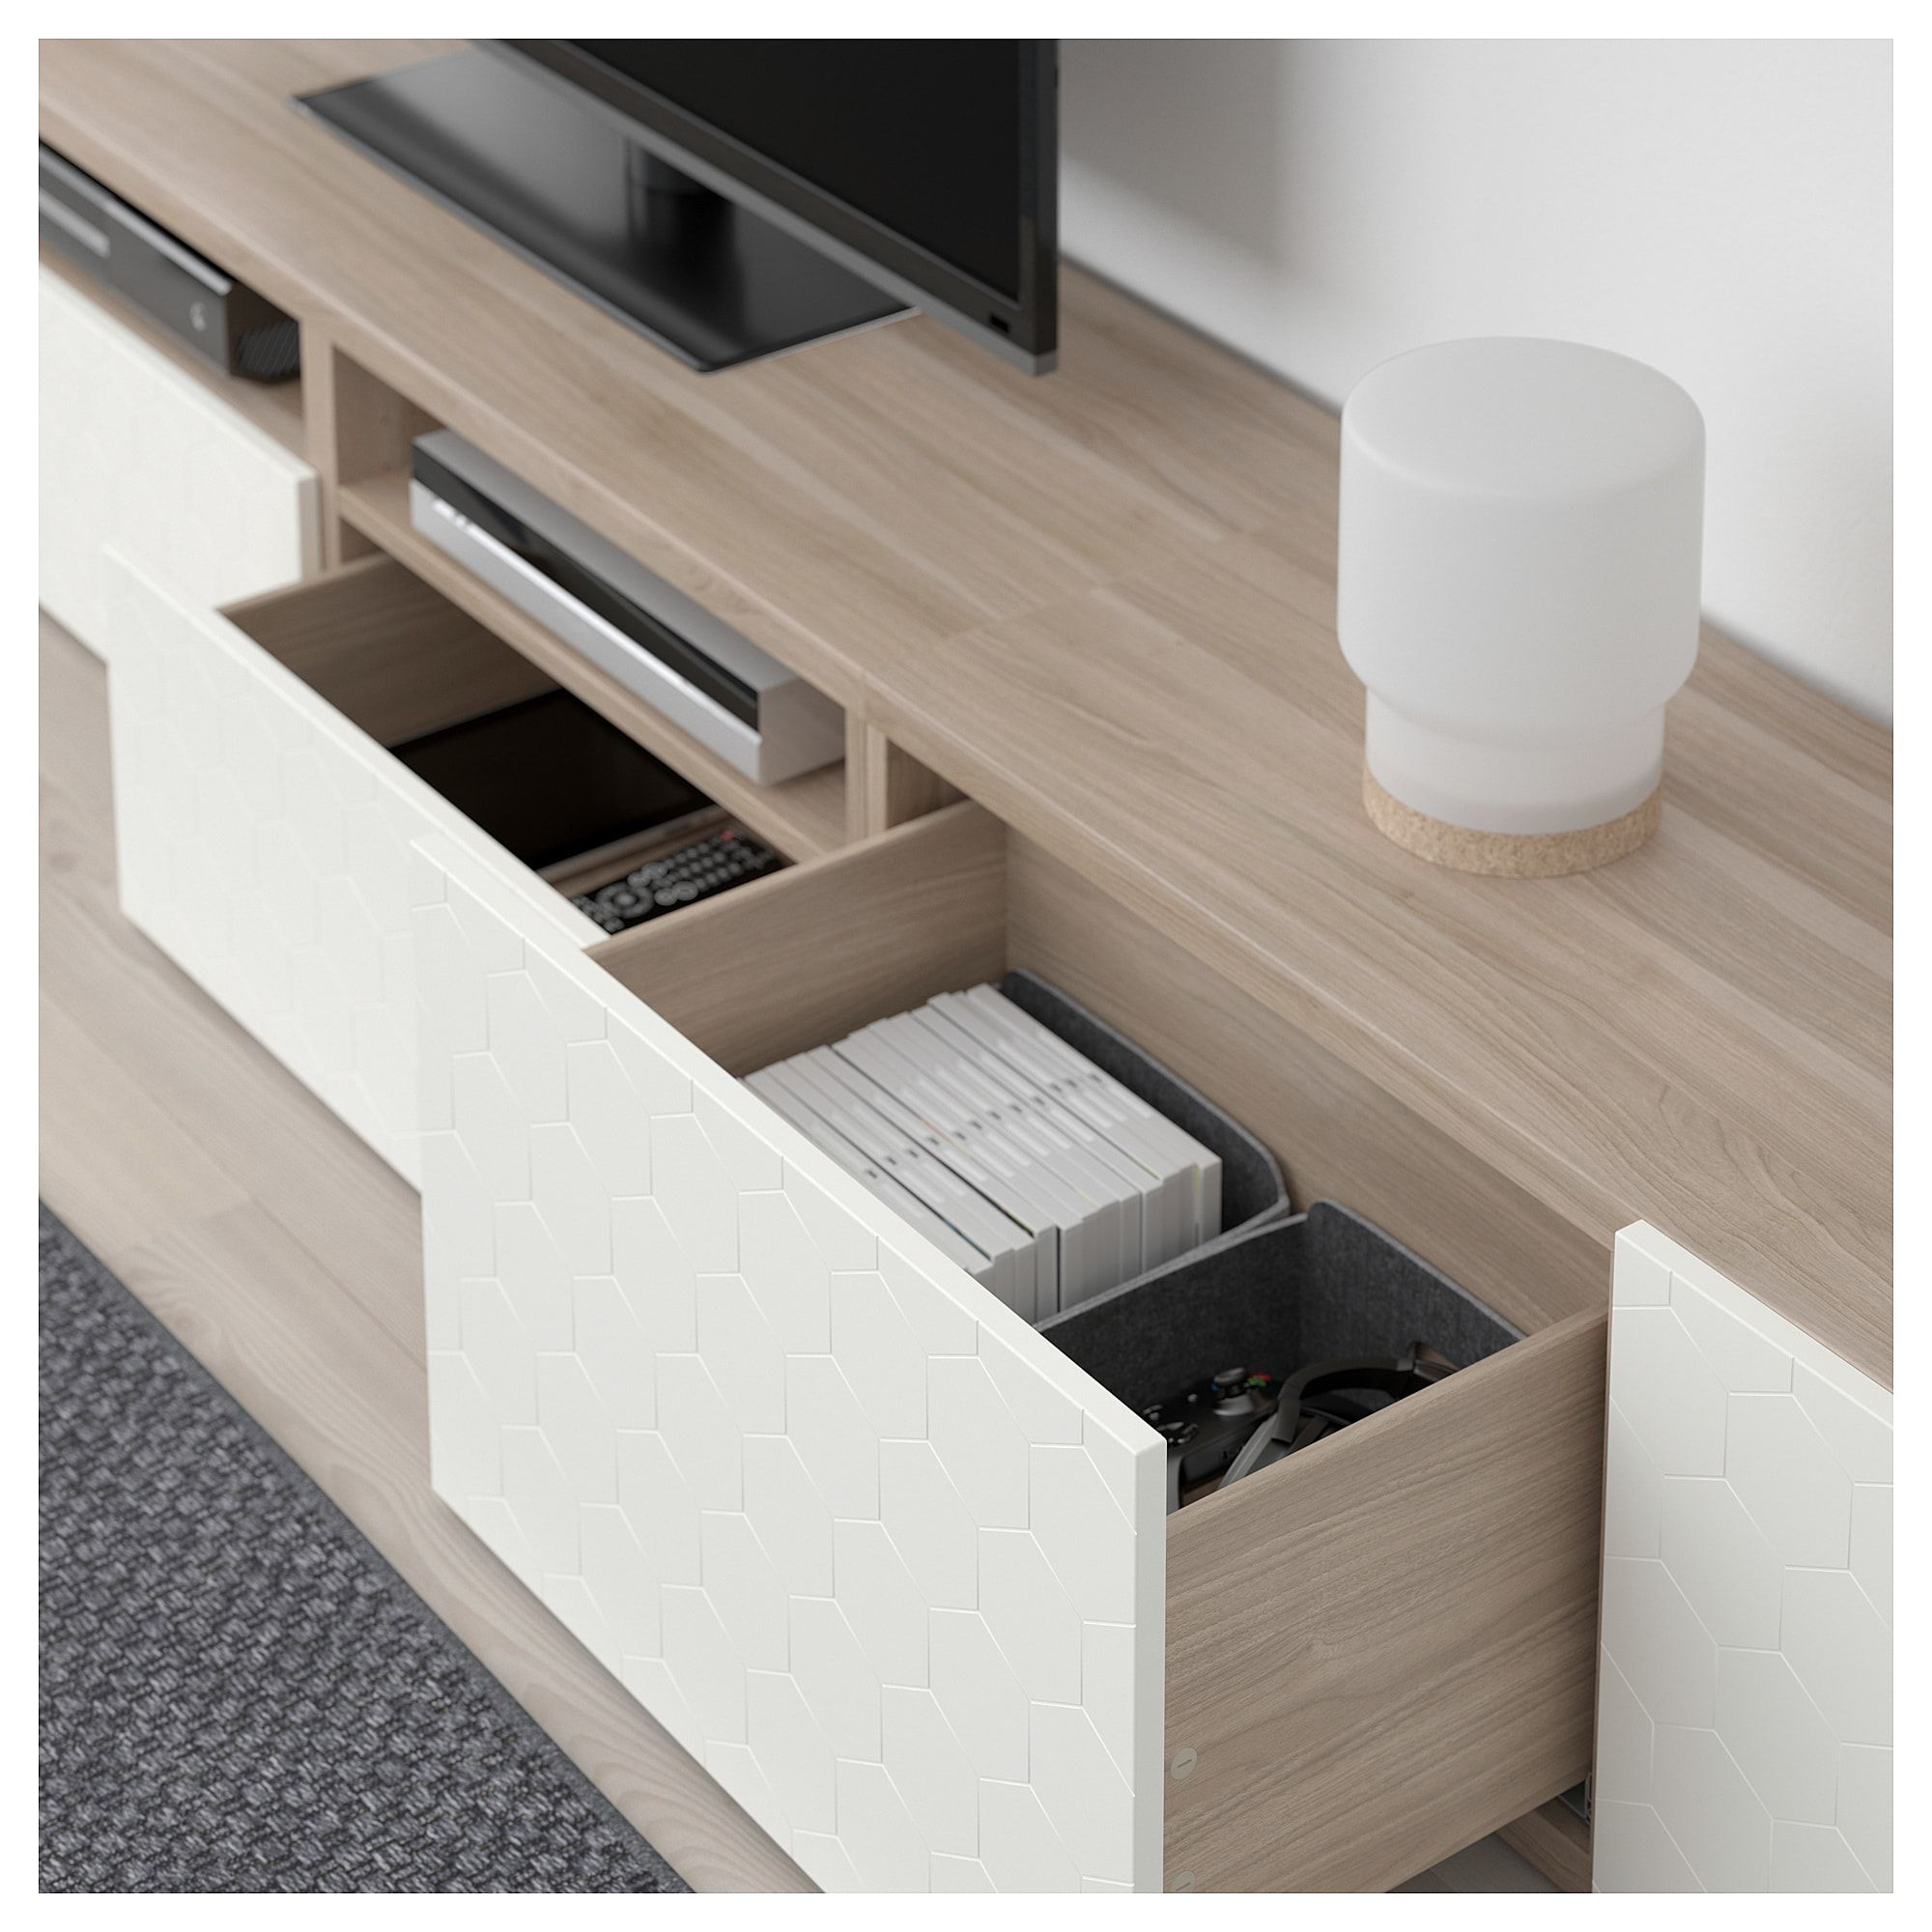 Furniture Home Furnishings Find Your Inspiration Tv Storage White Storage Bench Ikea